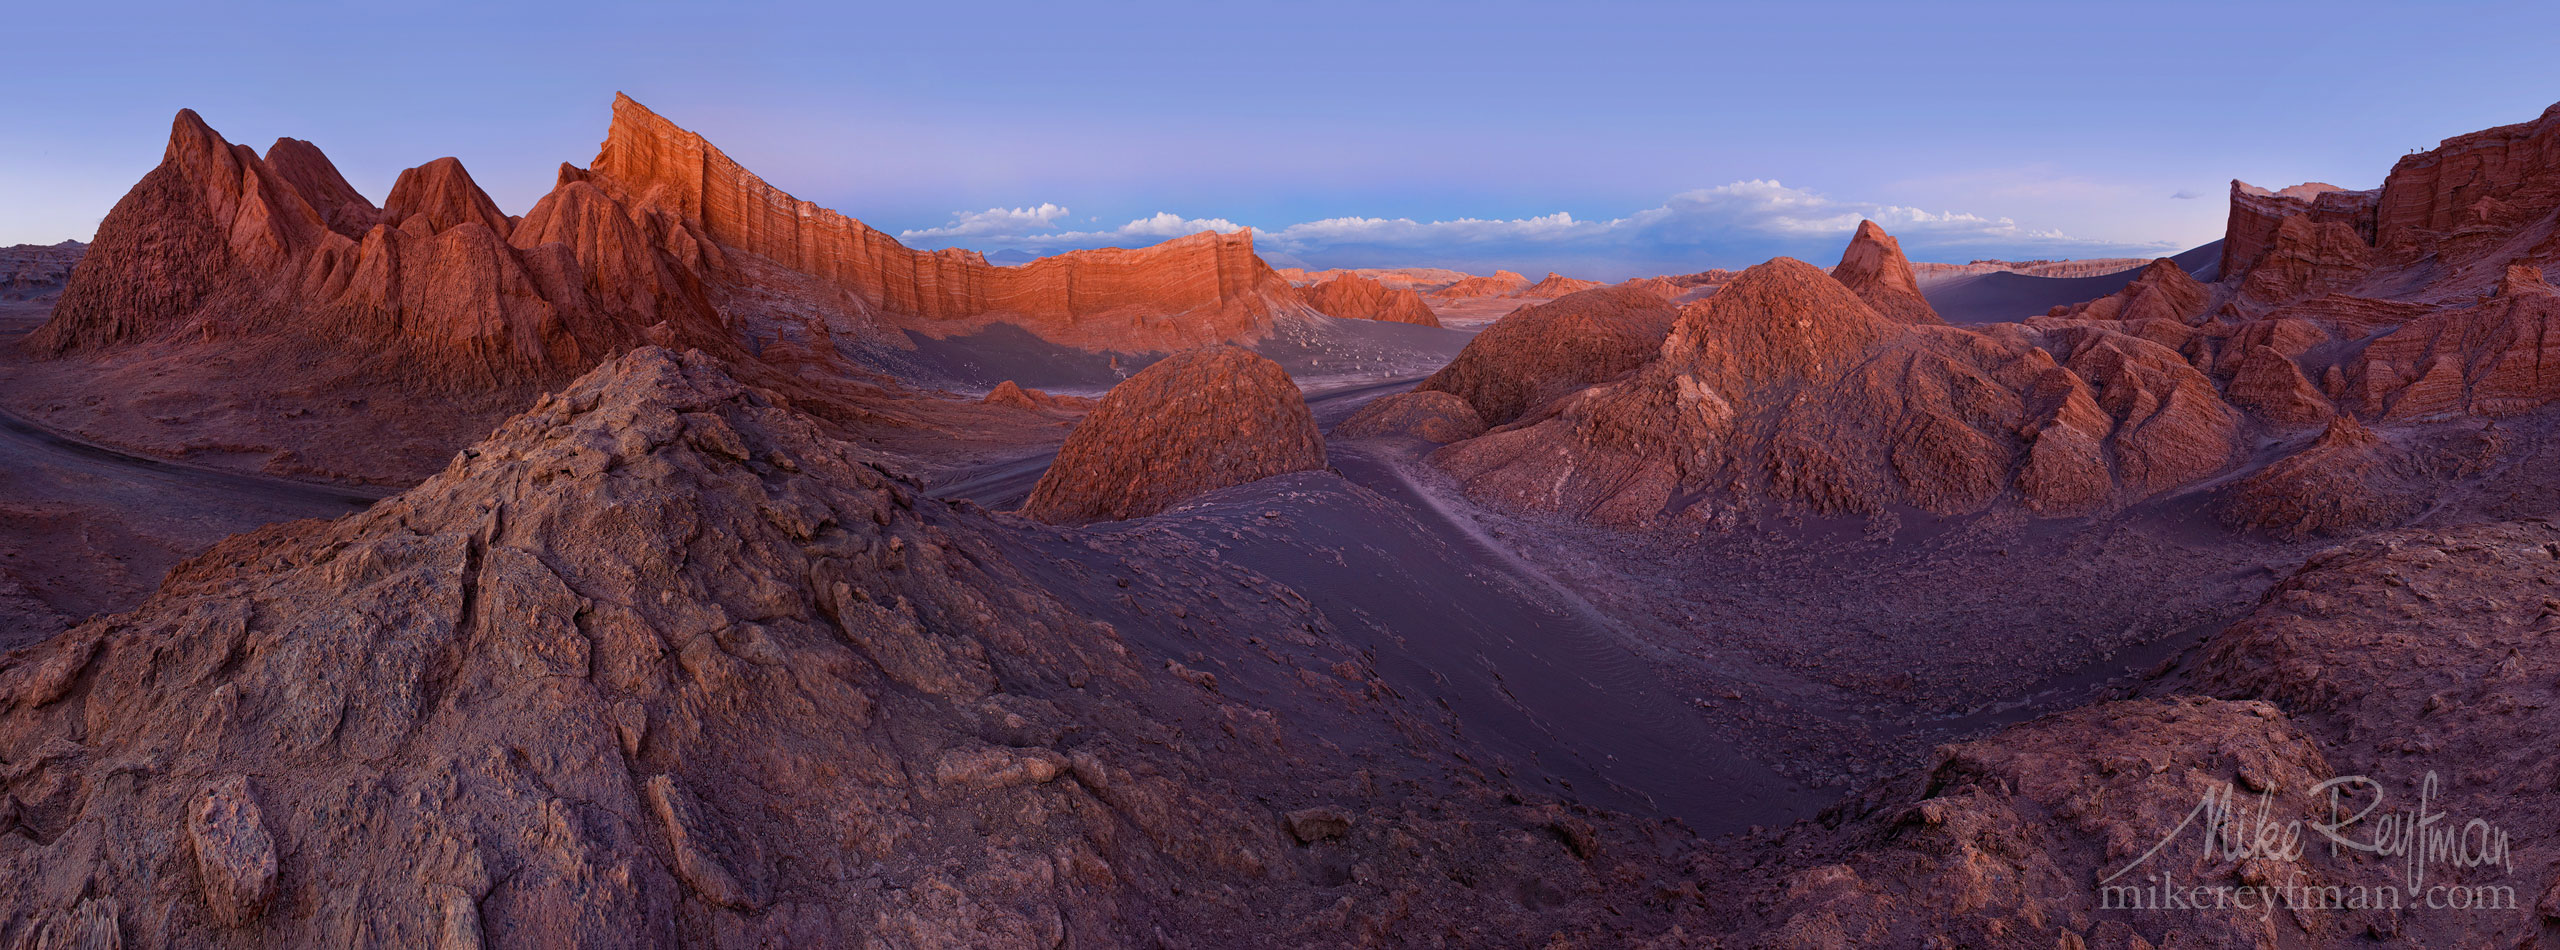 AA1-Q3X0255_Pano_1x2.55 - Atacama and Altiplano. The Driest Desert and The High Plain - Mike Reyfman Photography